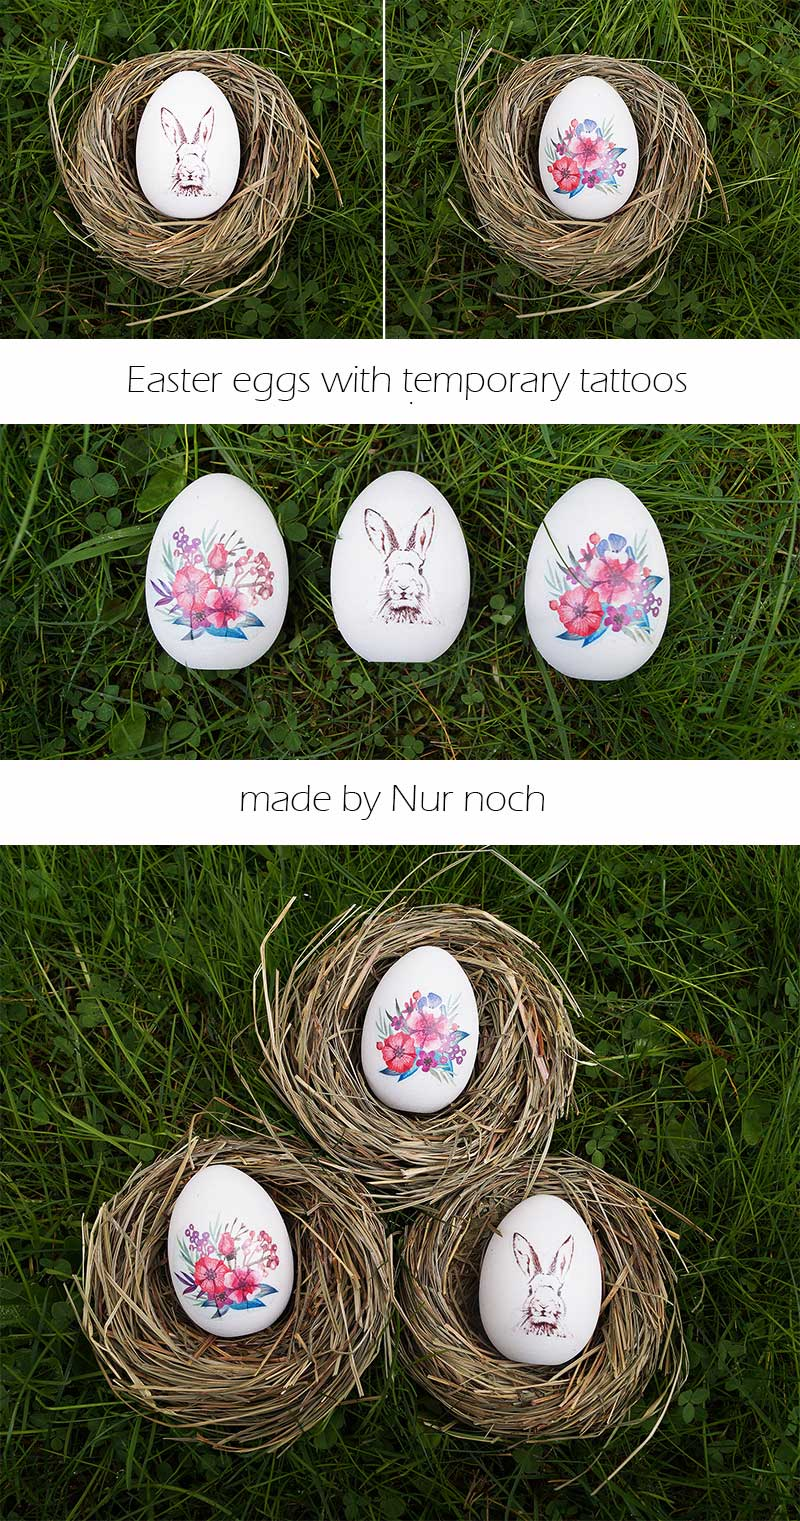 easter eggs with temporary tattoos by Nur noch